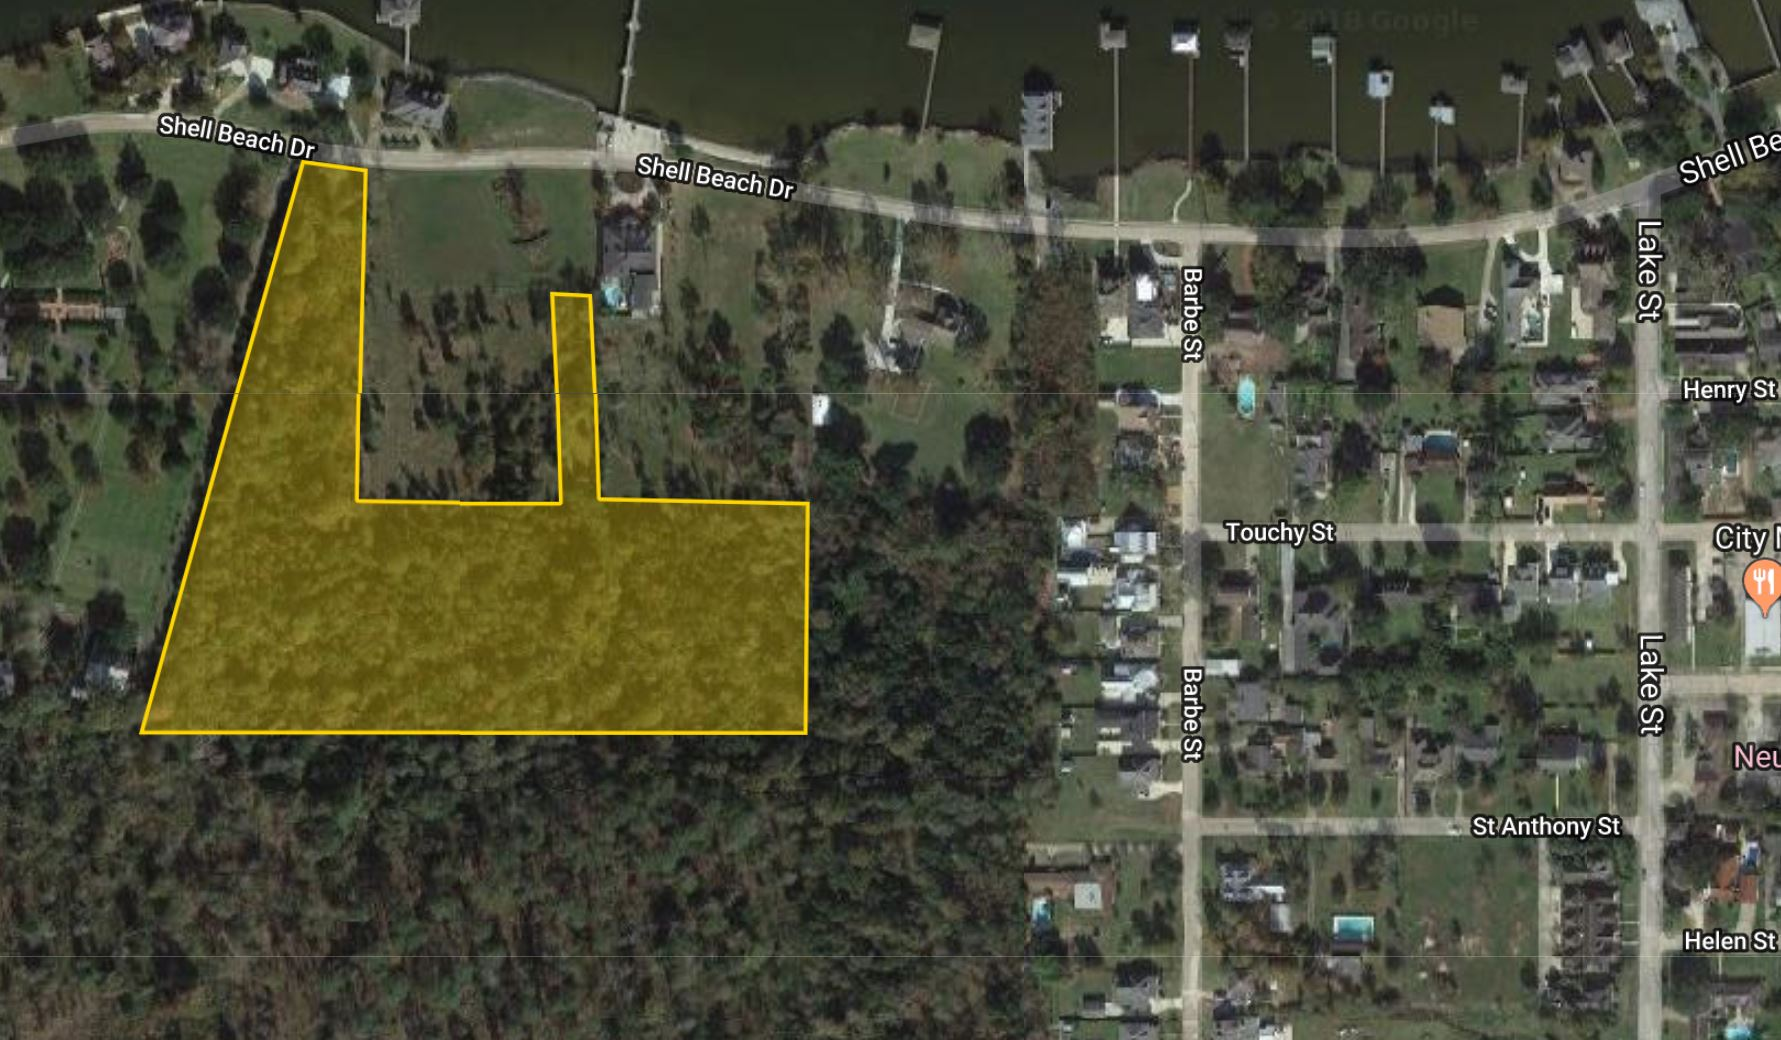 10 Acres off of Shell Beach Drive